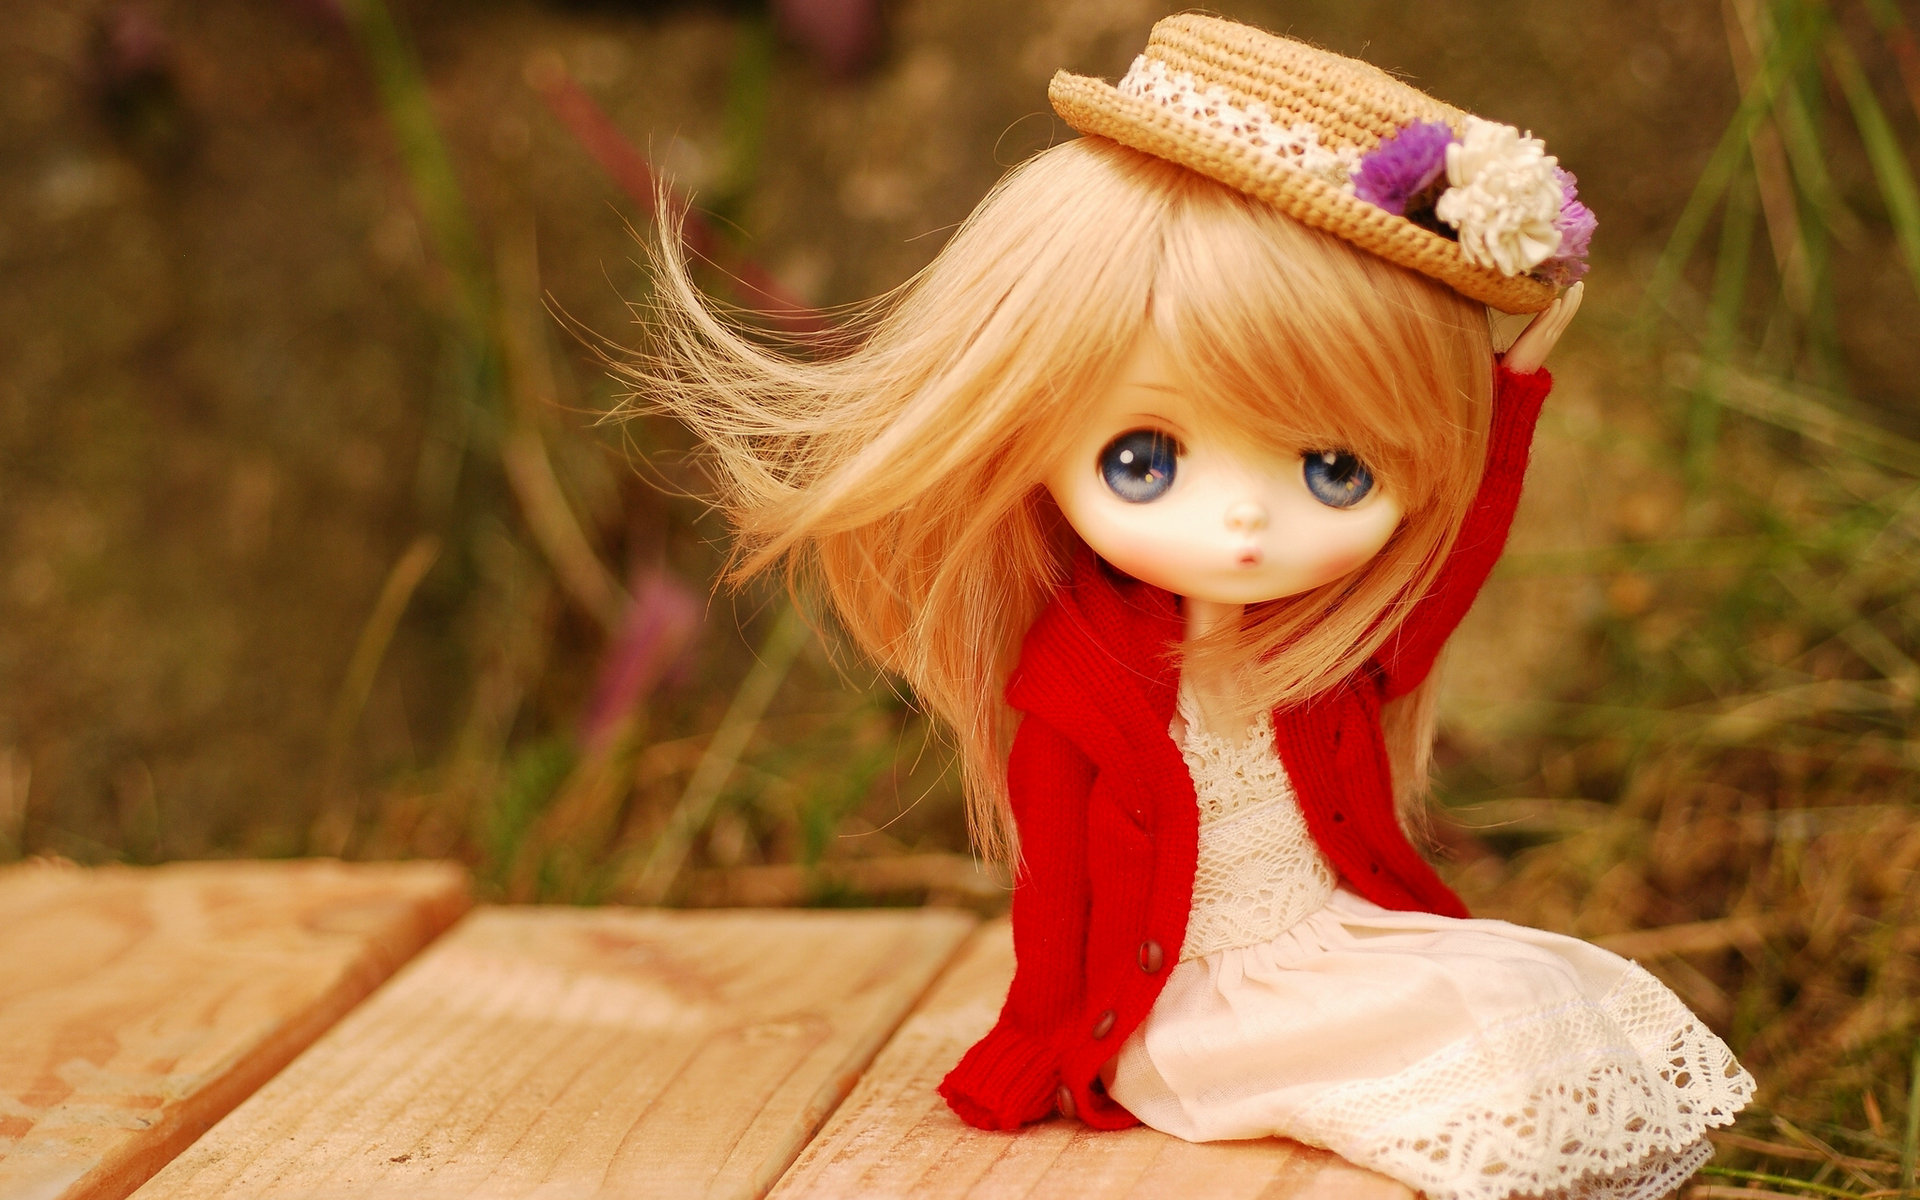 Toy Doll Blue Eyes Wallpaper